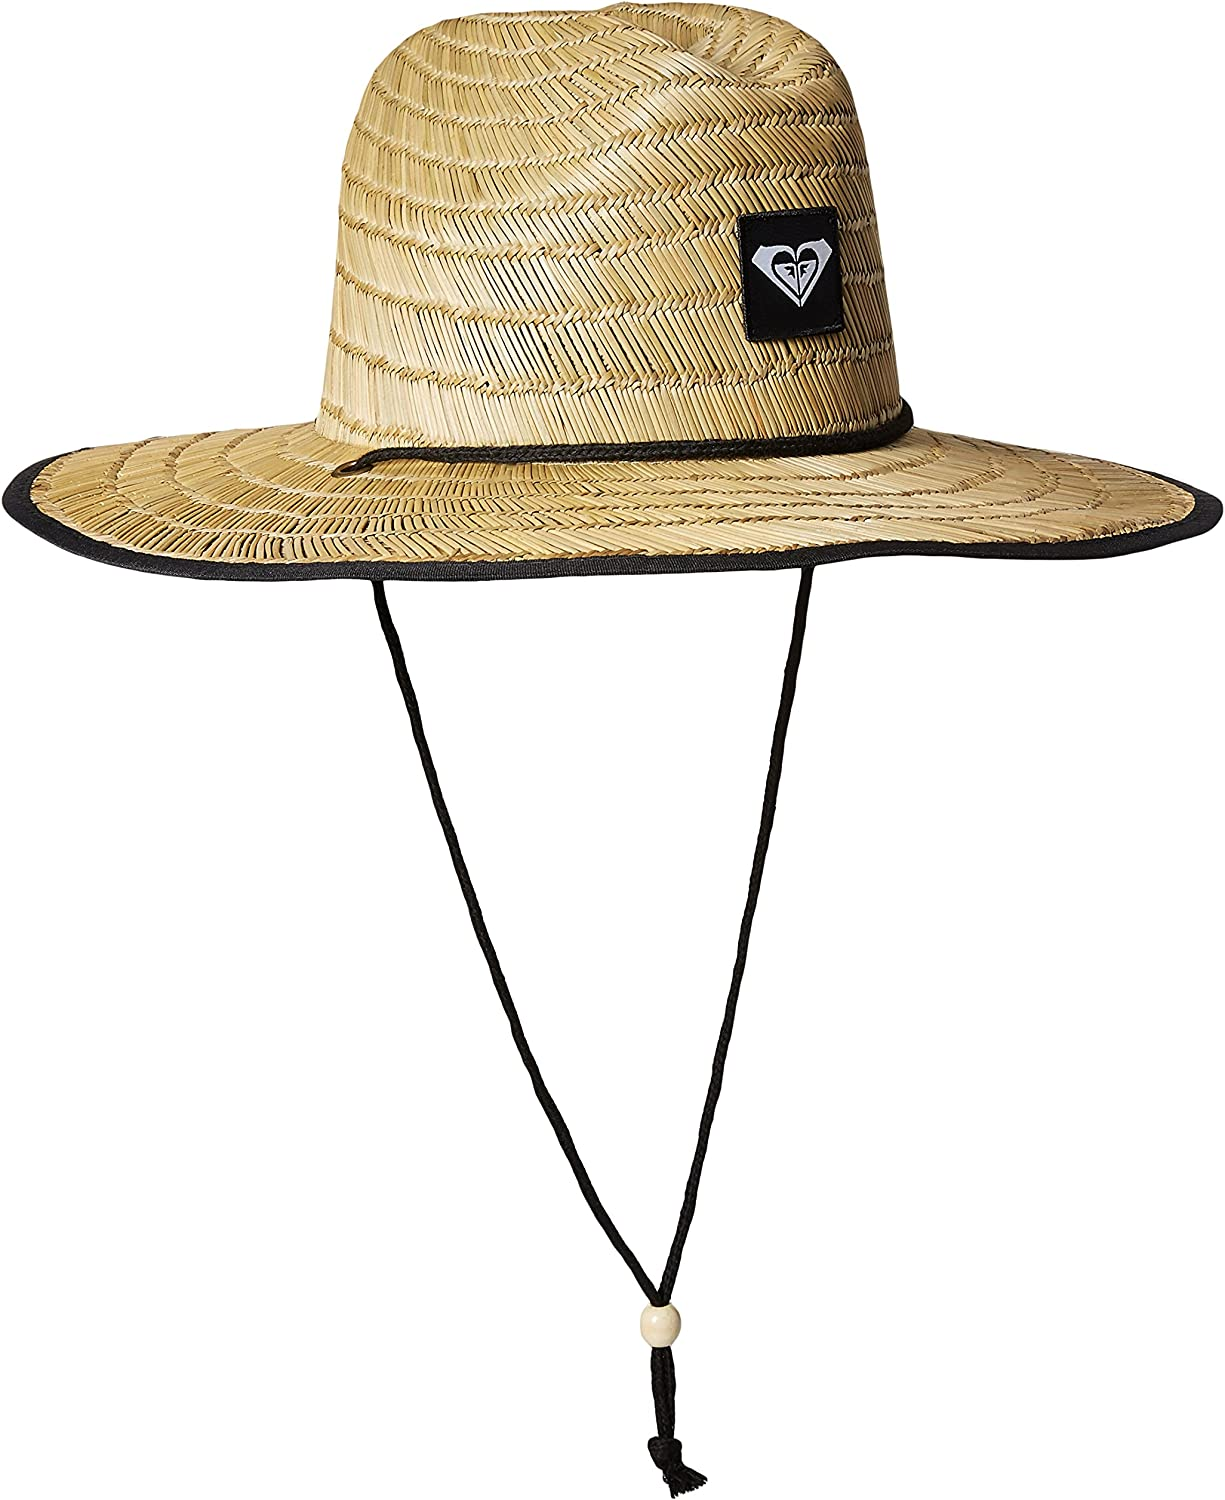 Roxy Women's Tomboy Straw Hat